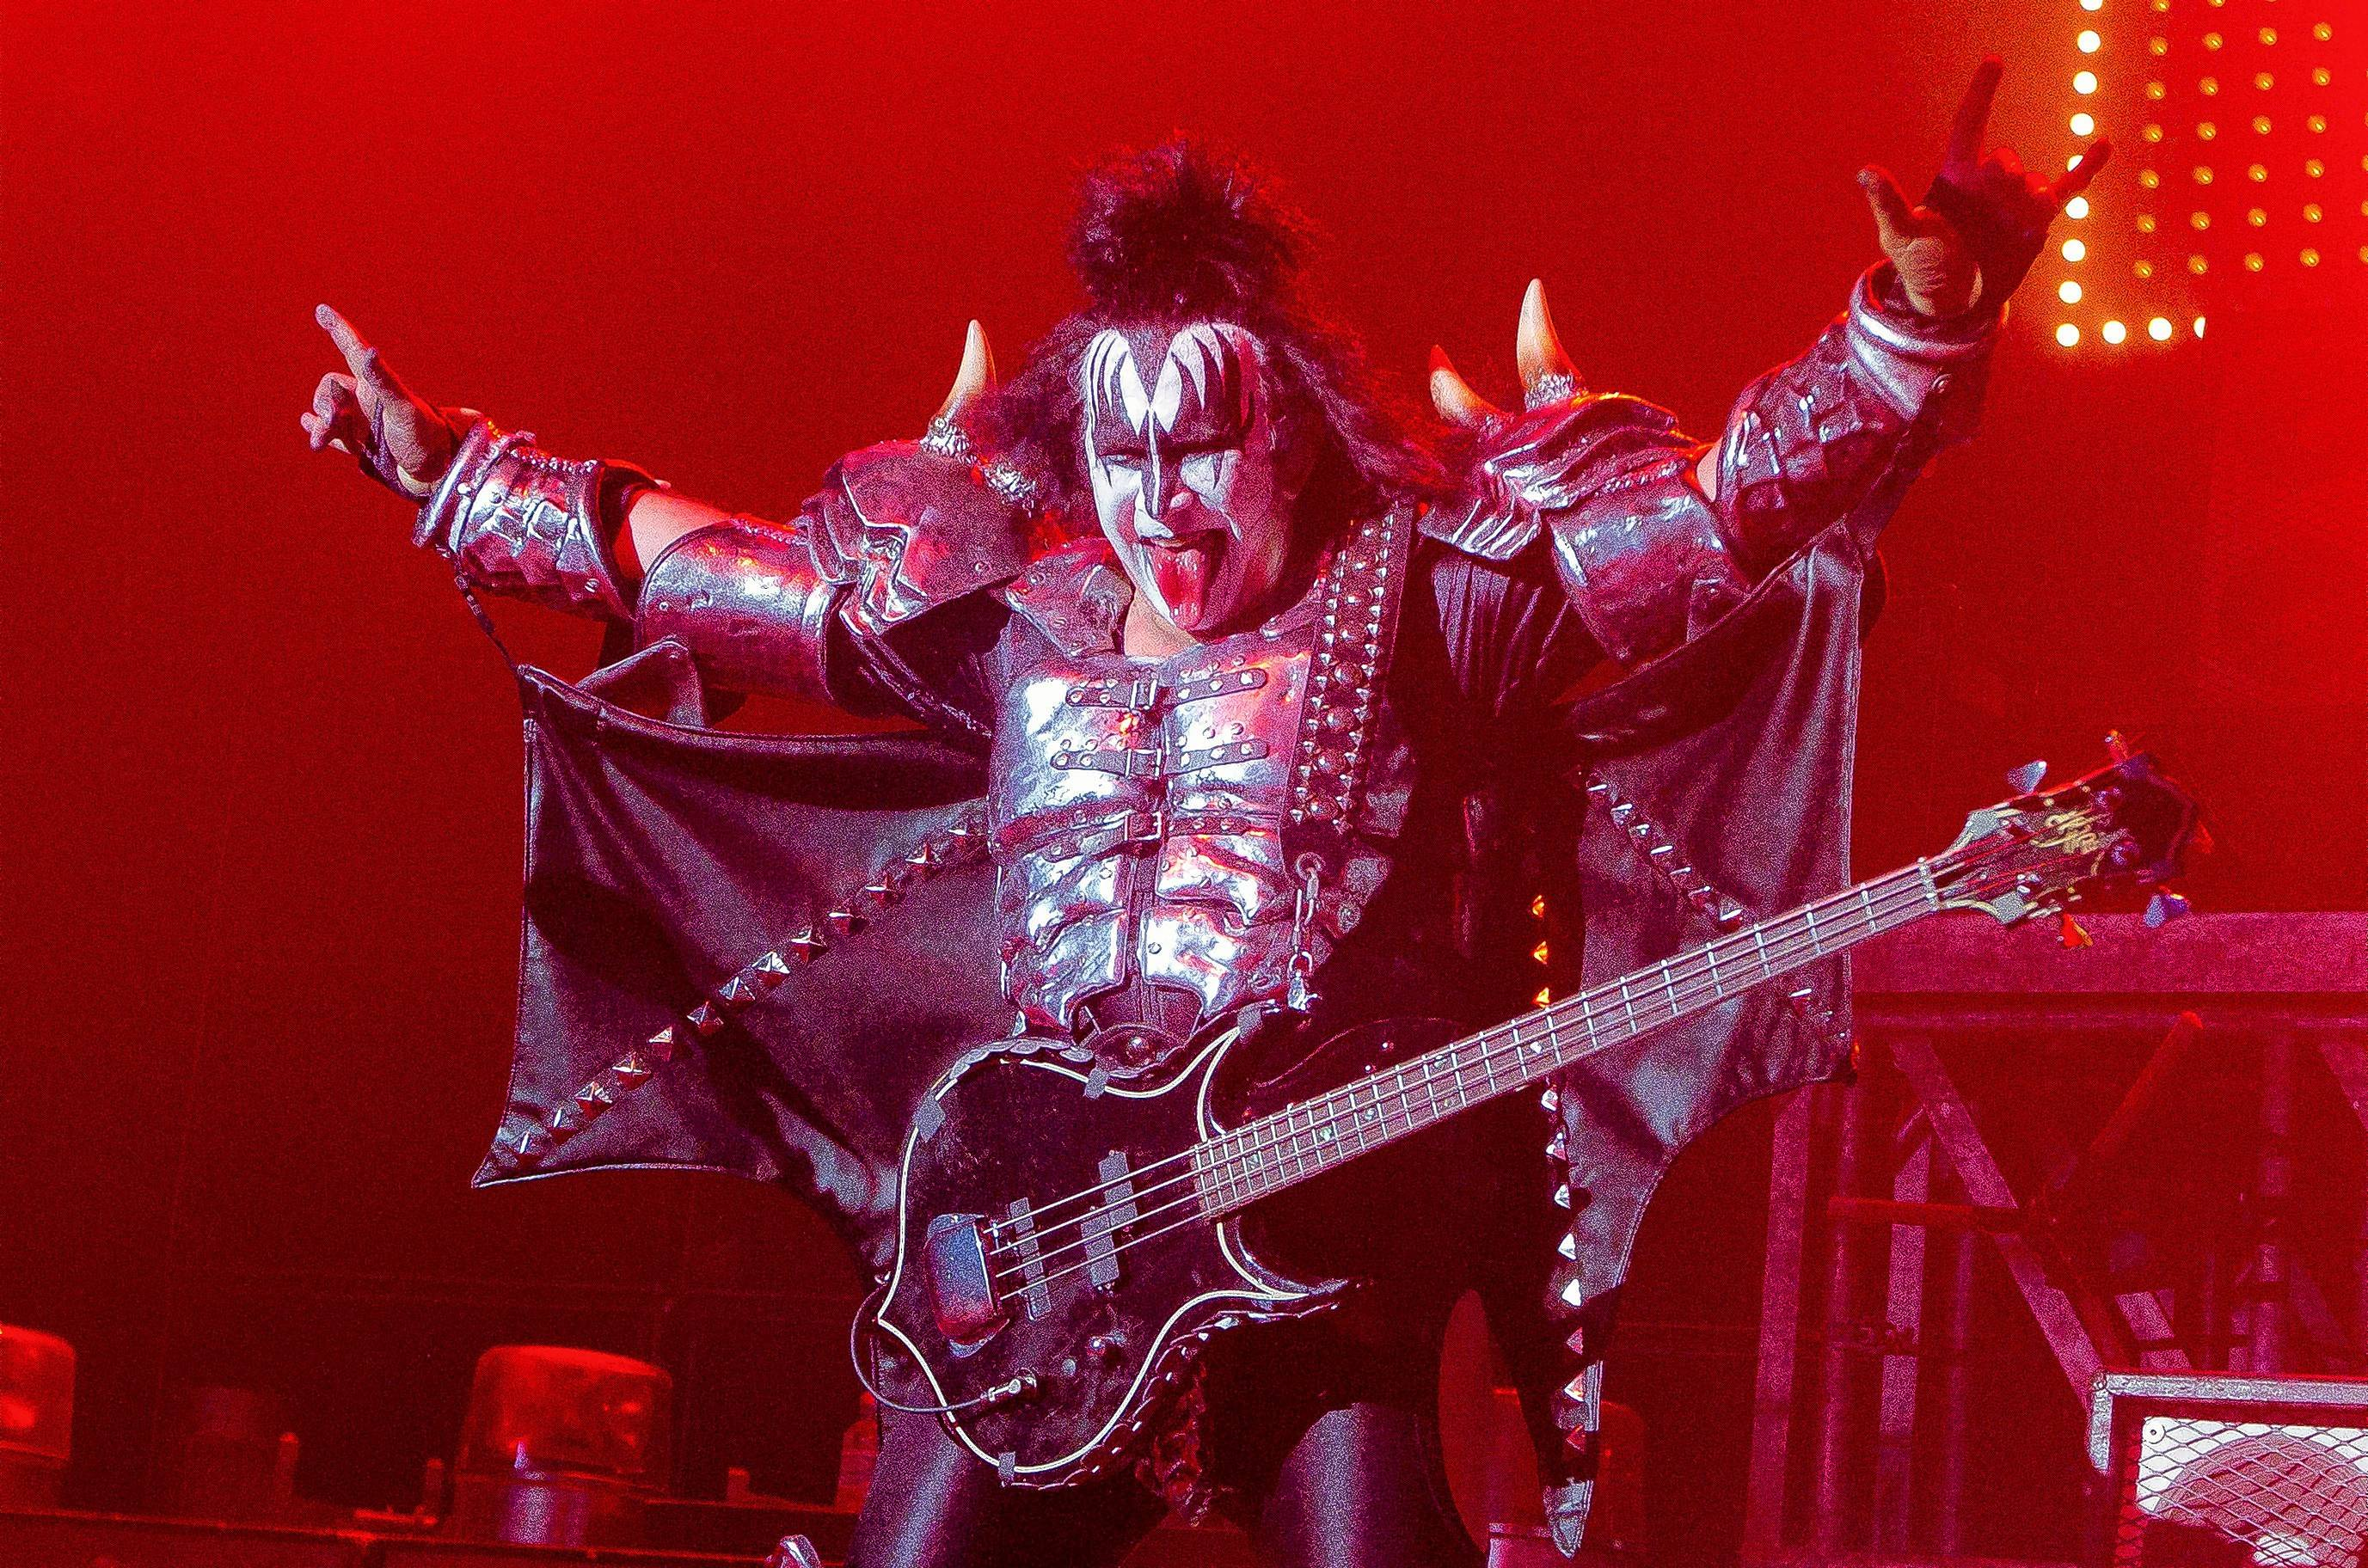 Gene Simmons of KISS, which performs at RiverEdge Park in Aurora on Sunday, Aug. 20.